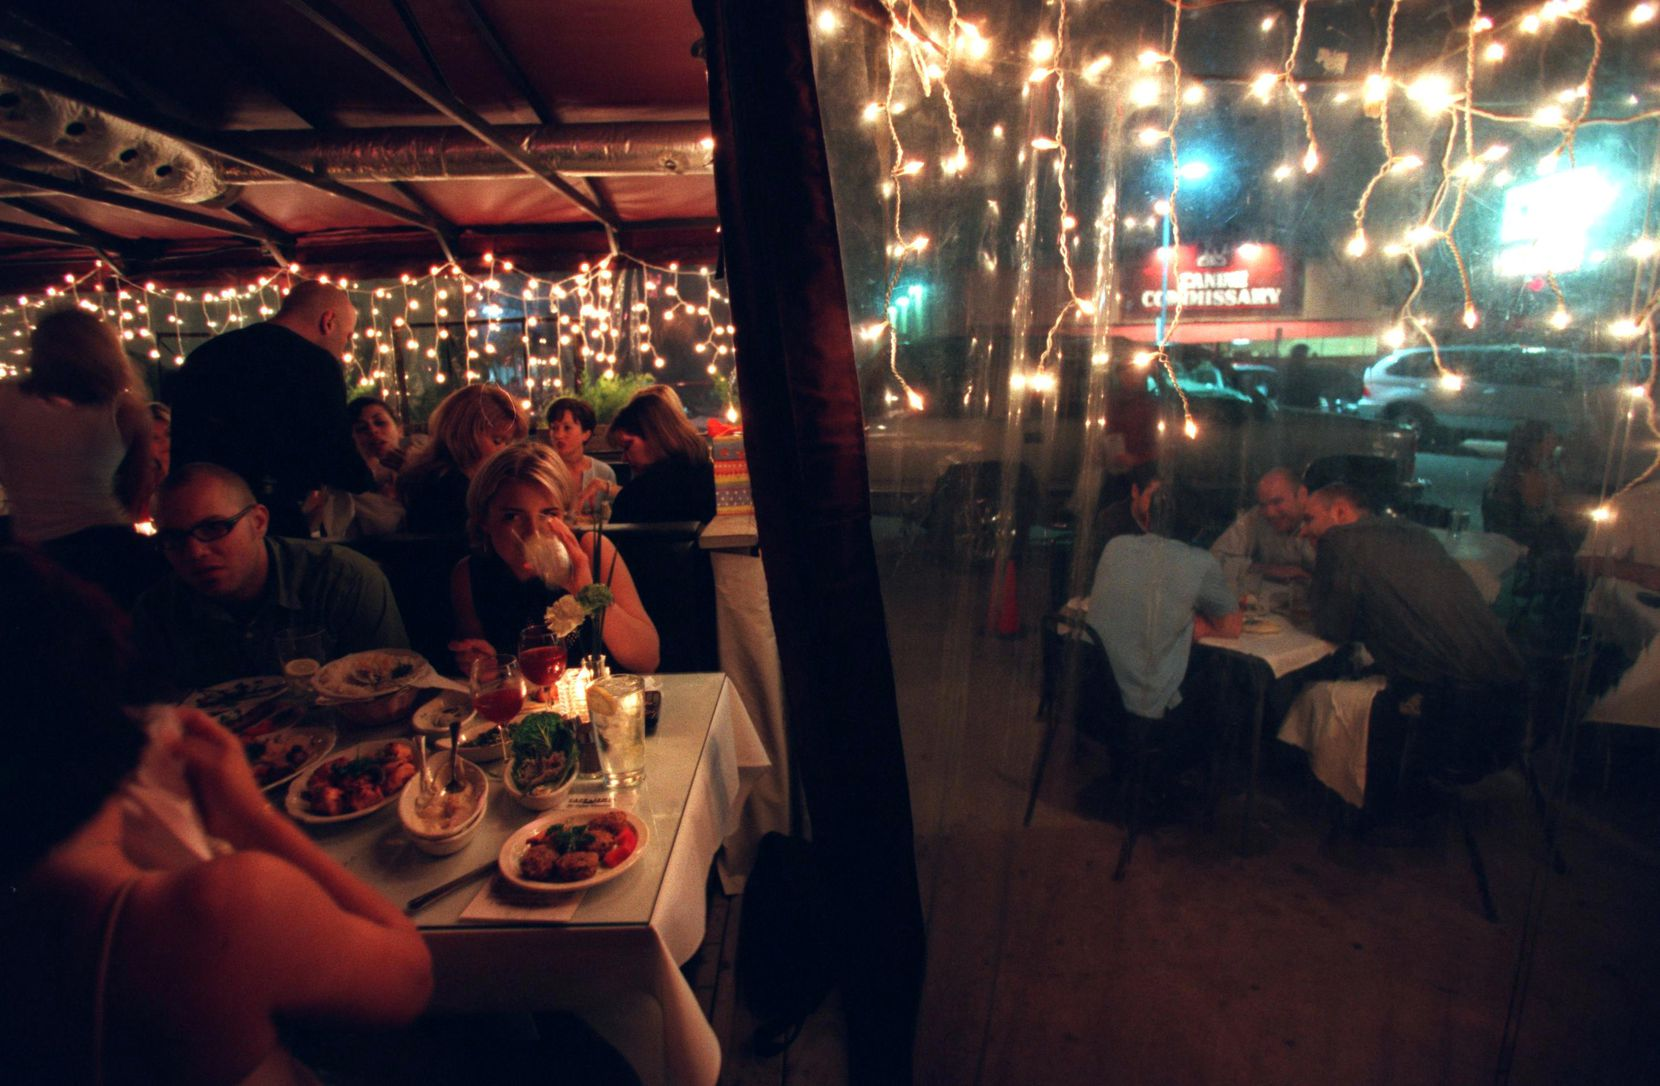 Expect crowds at Cafe Izmir on Lower Greenville: It's a sign that locals like it.